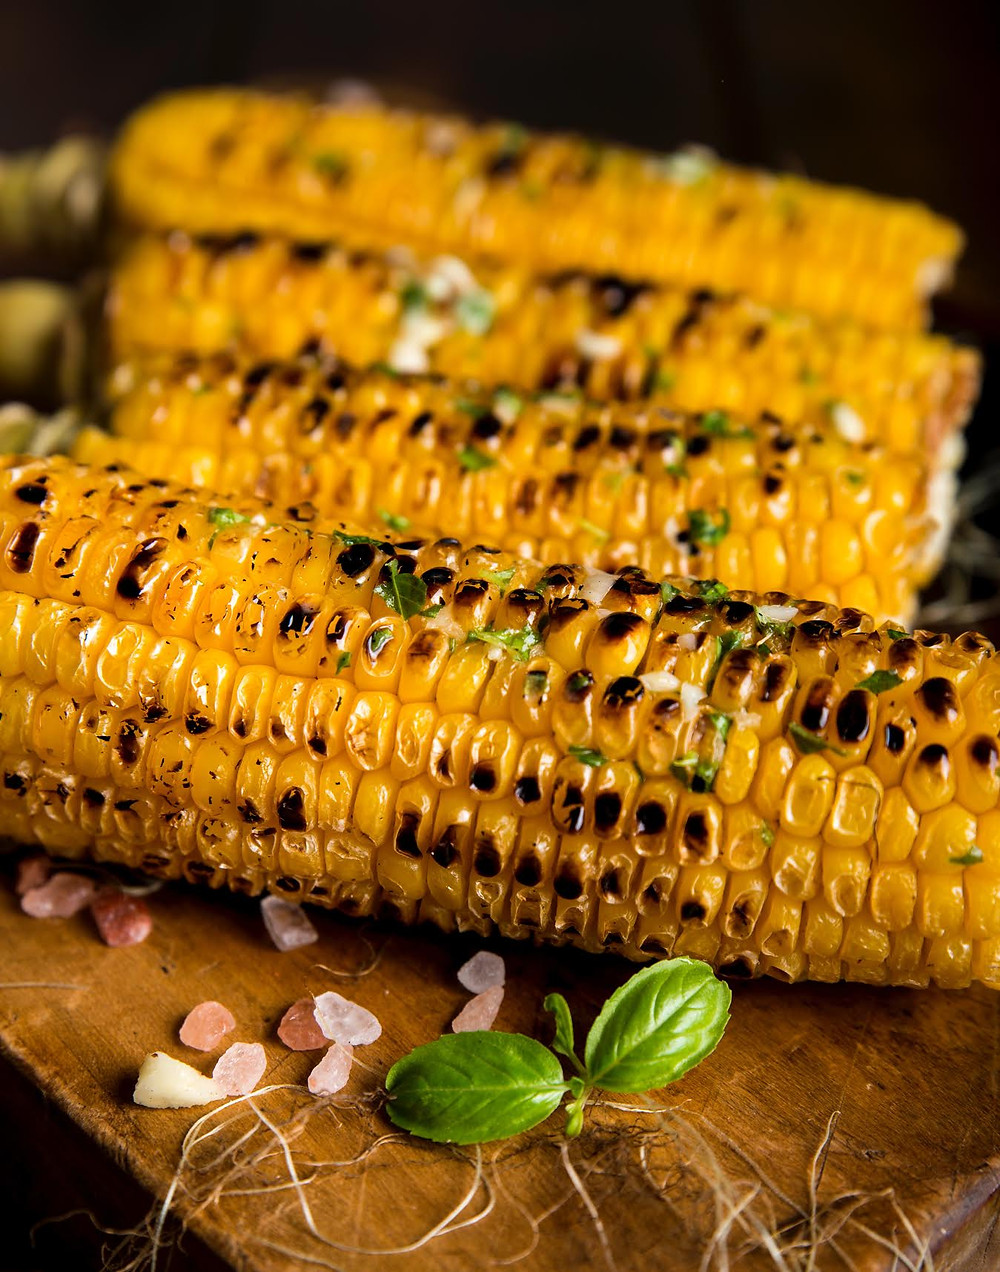 Corn that has been grilled.